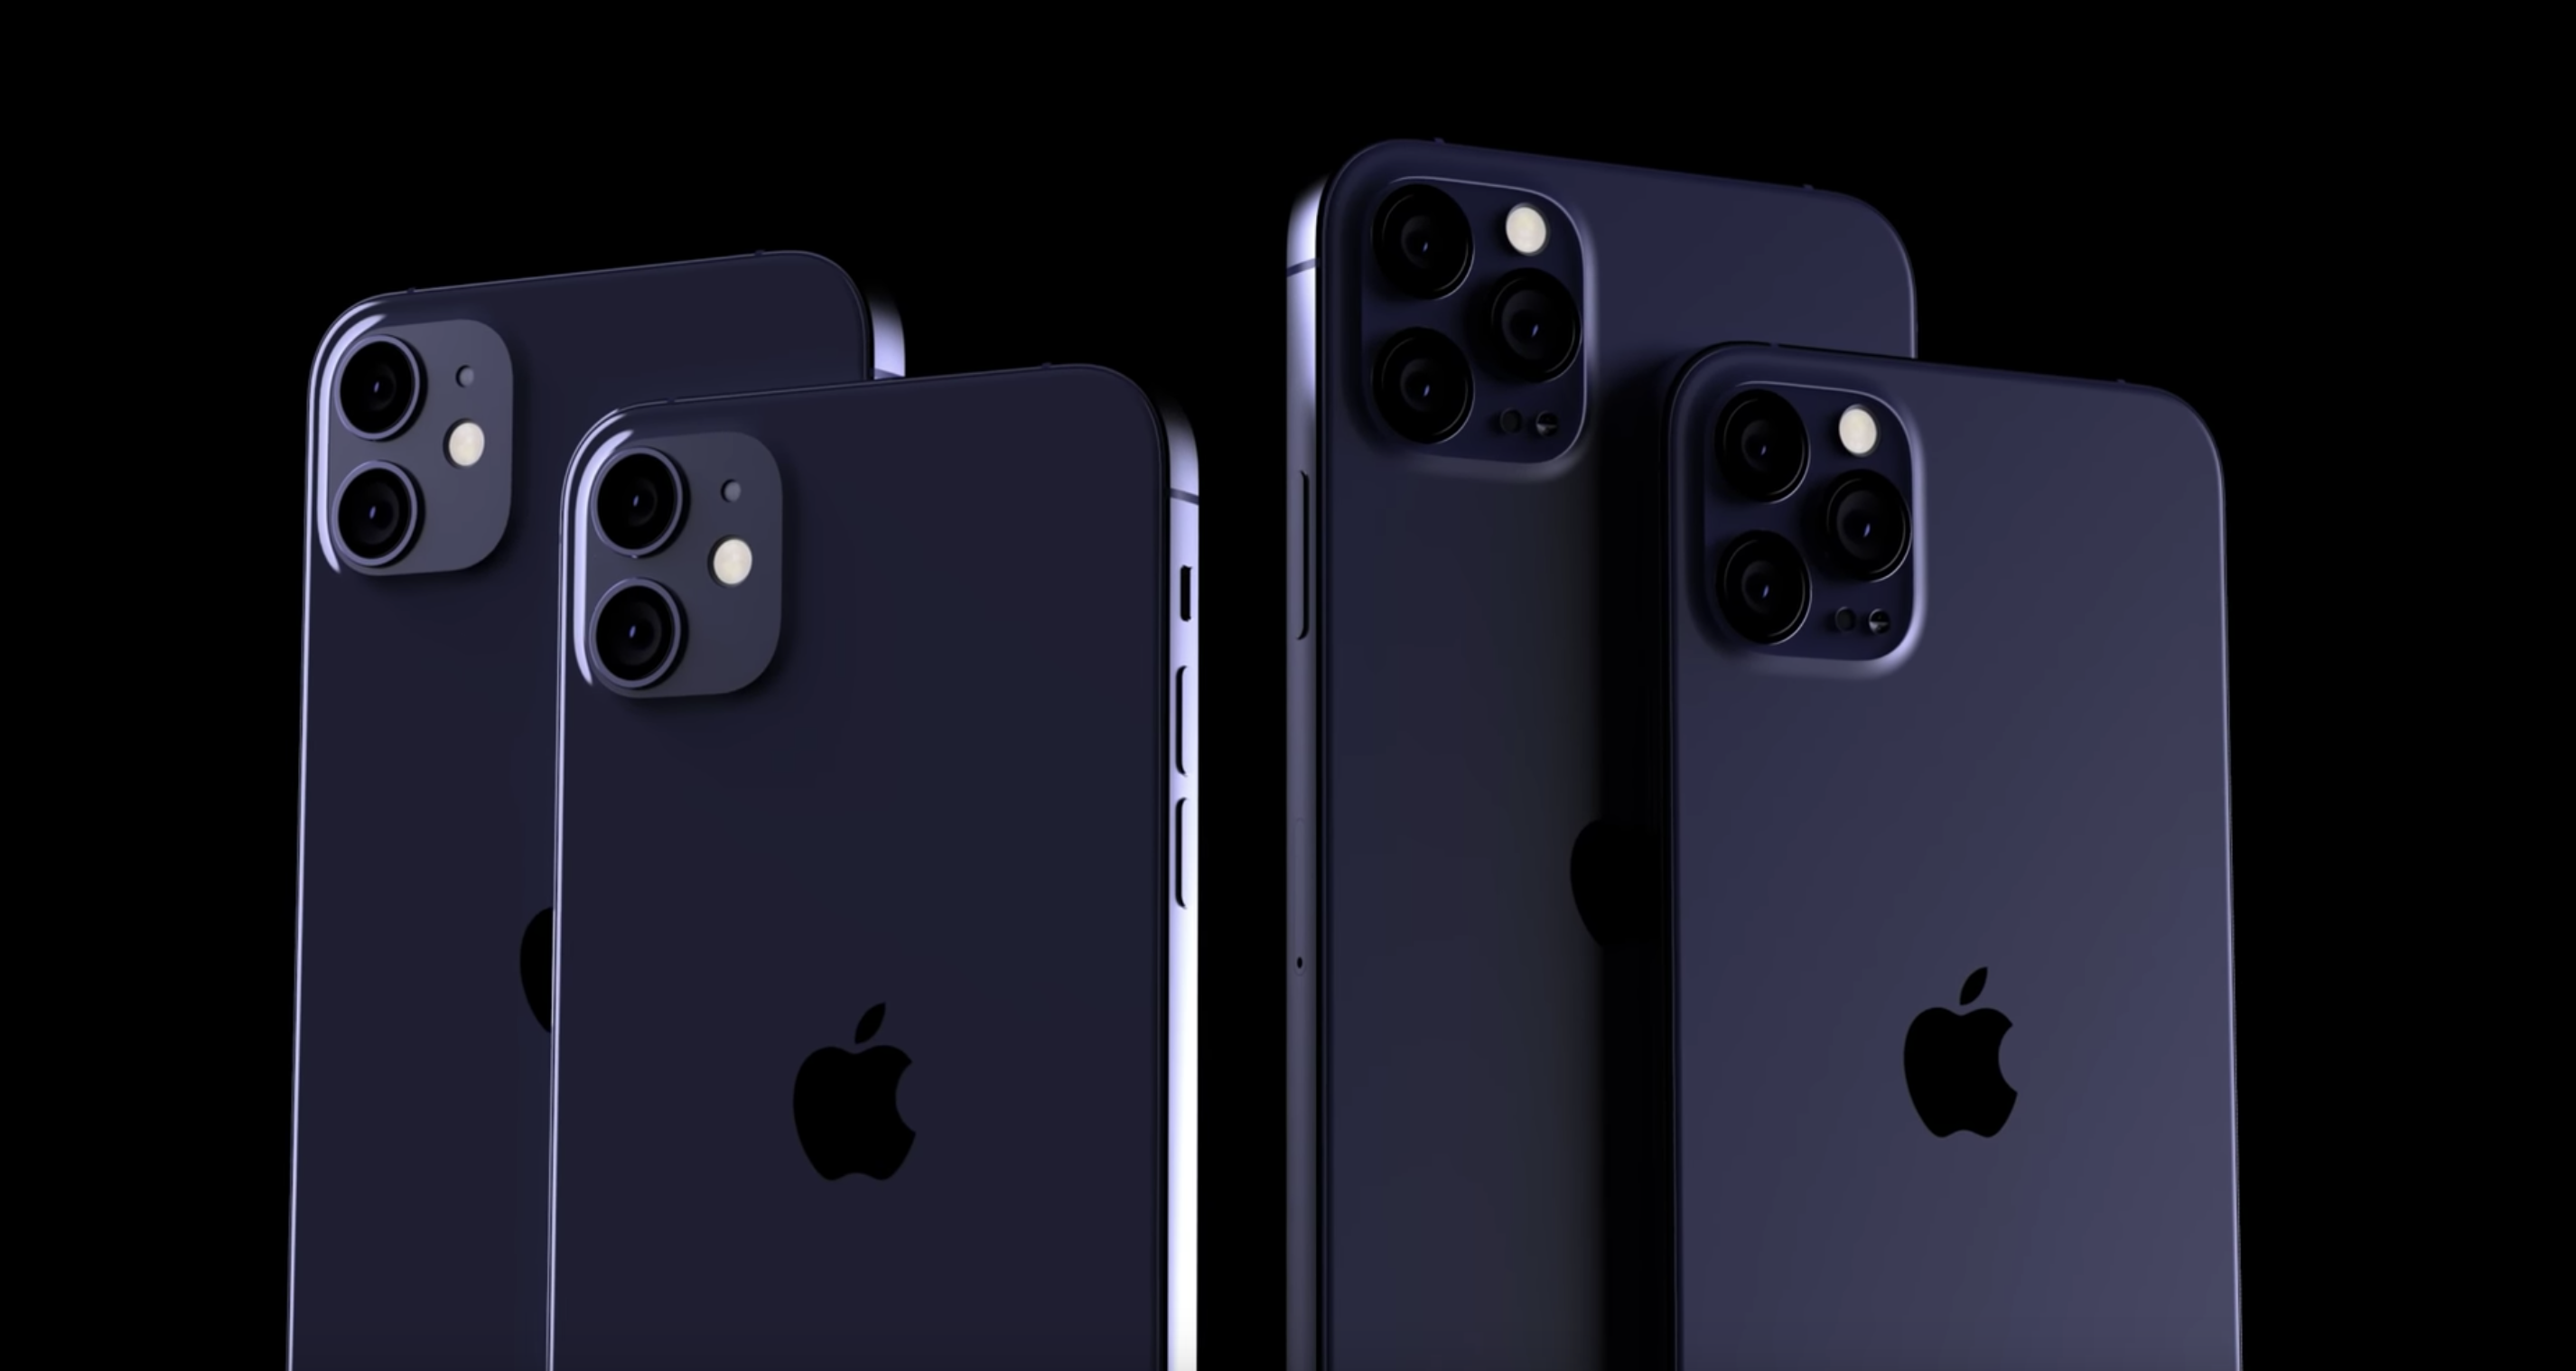 Apple expected launch iPhone 12 with new Navy Blue color